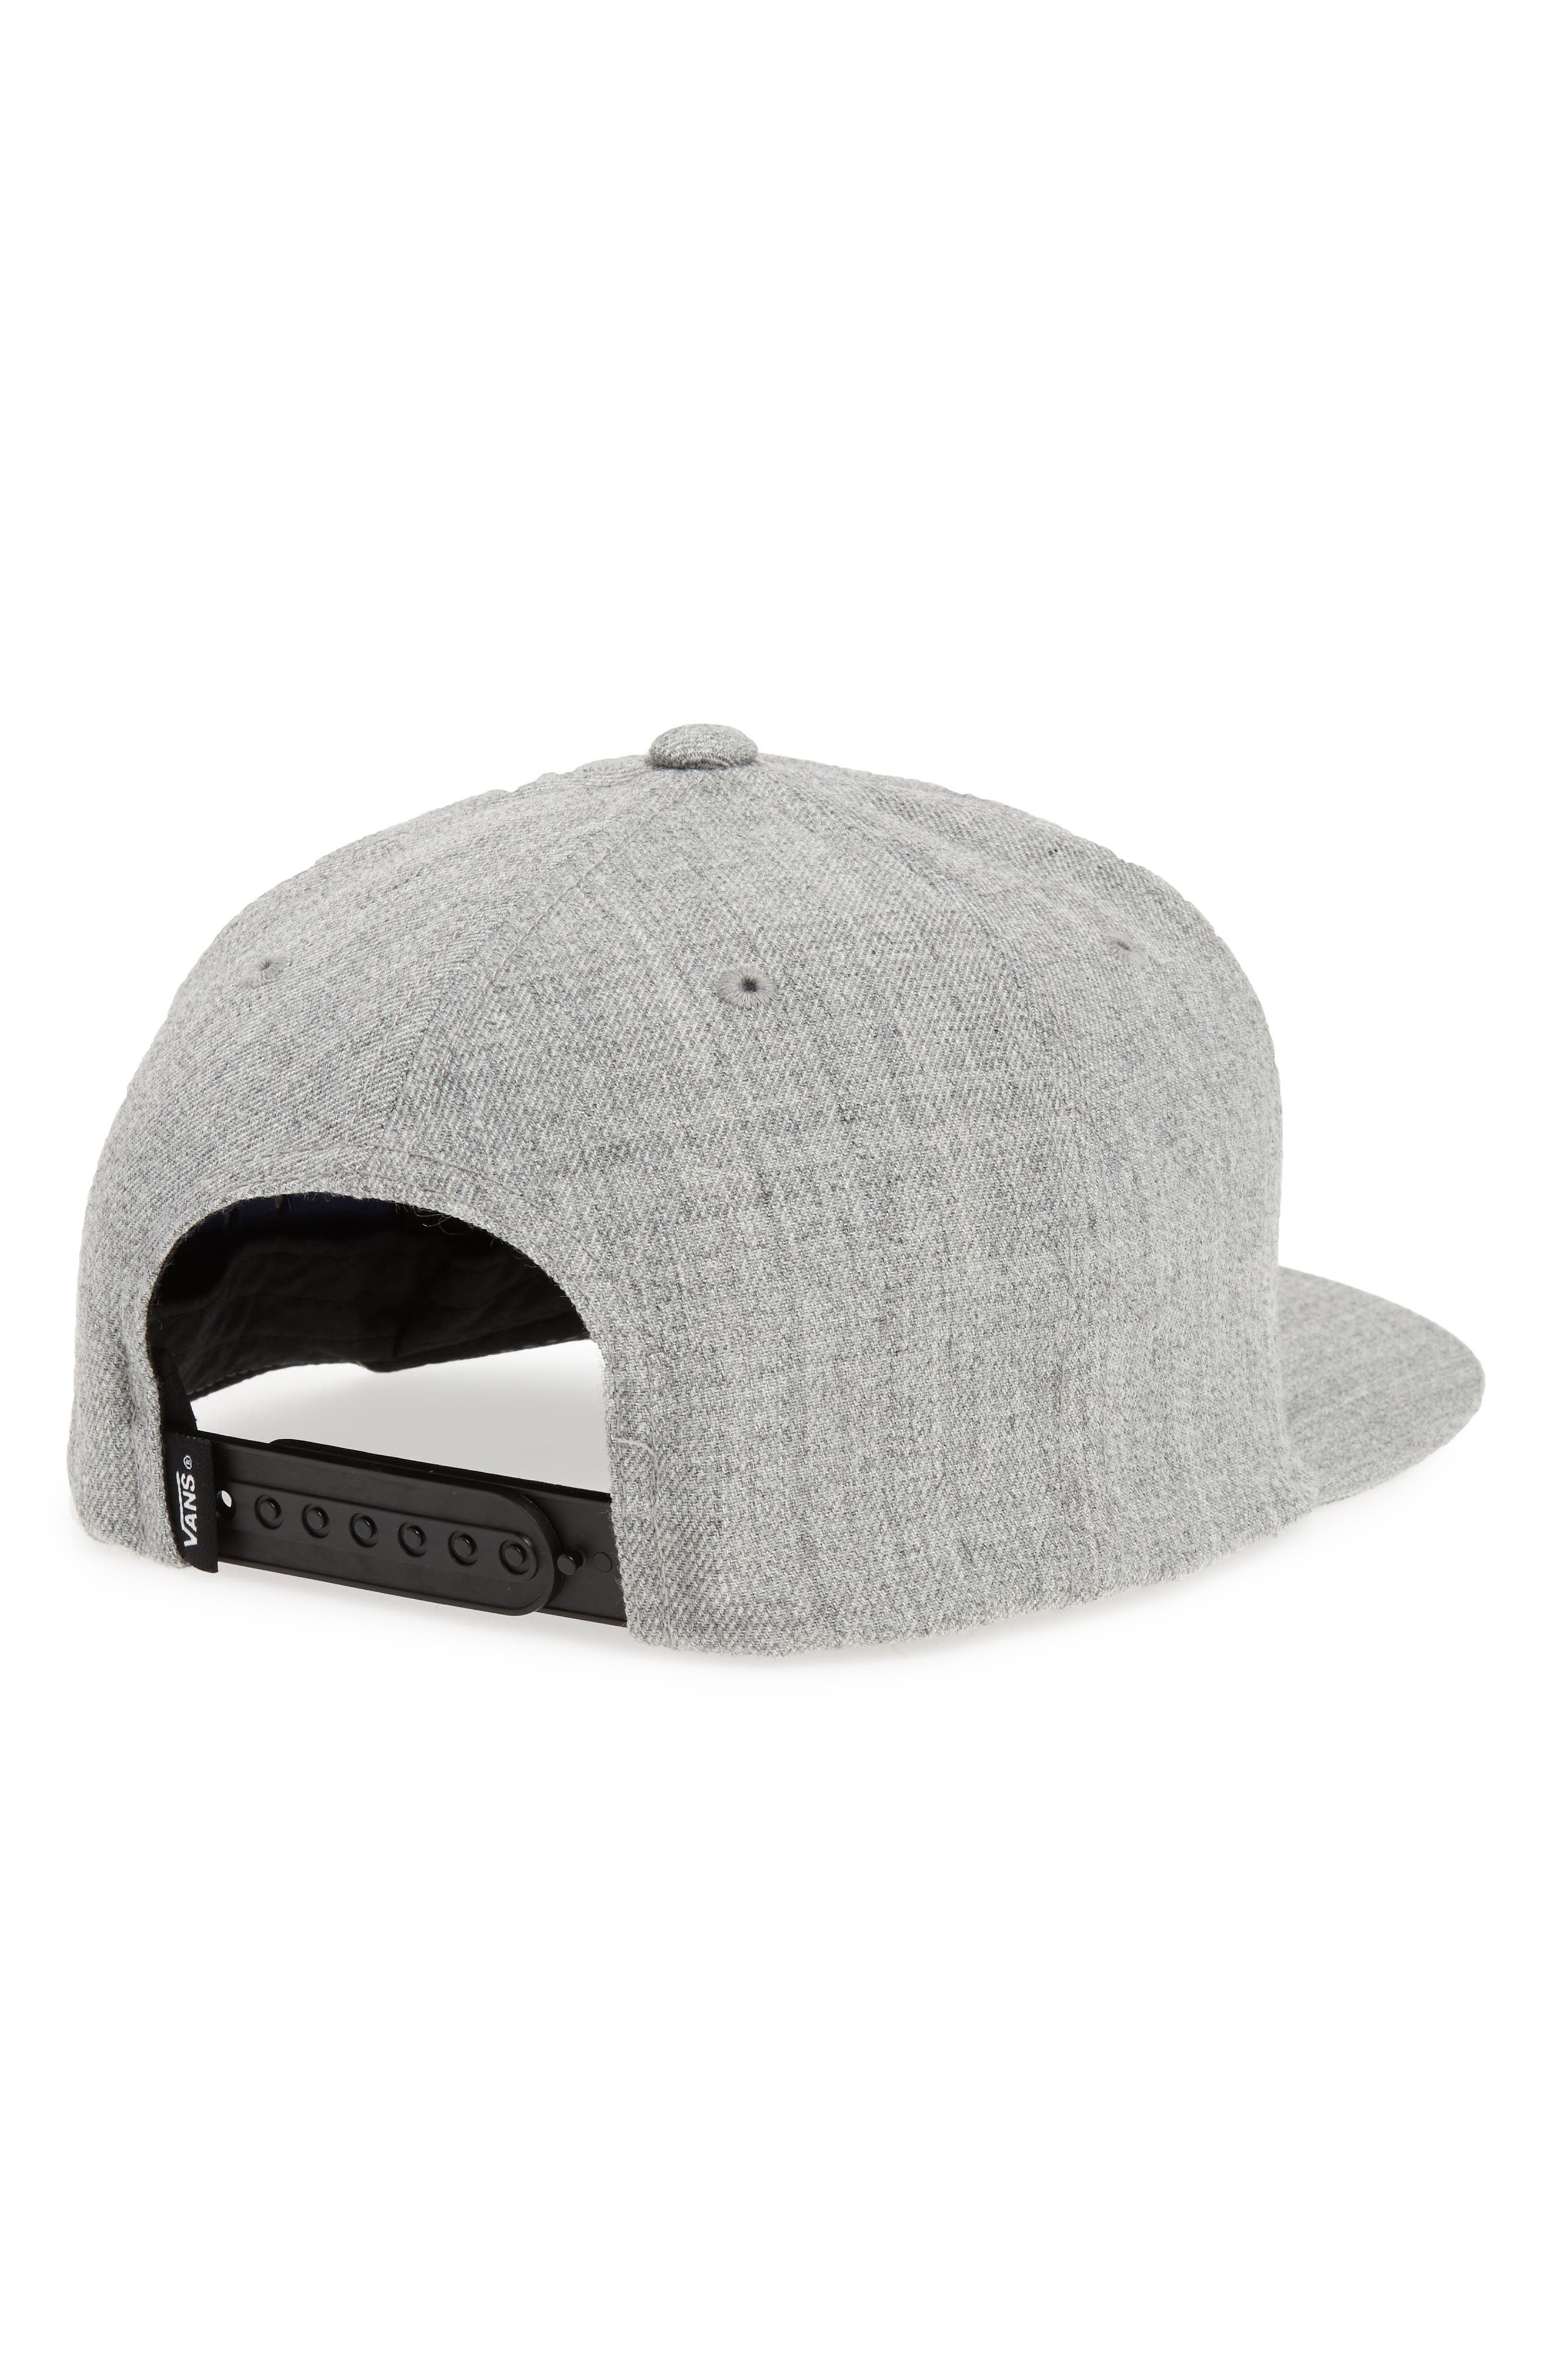 'Full Patch' Snapback Hat,                             Alternate thumbnail 2, color,                             HEATHER GREY